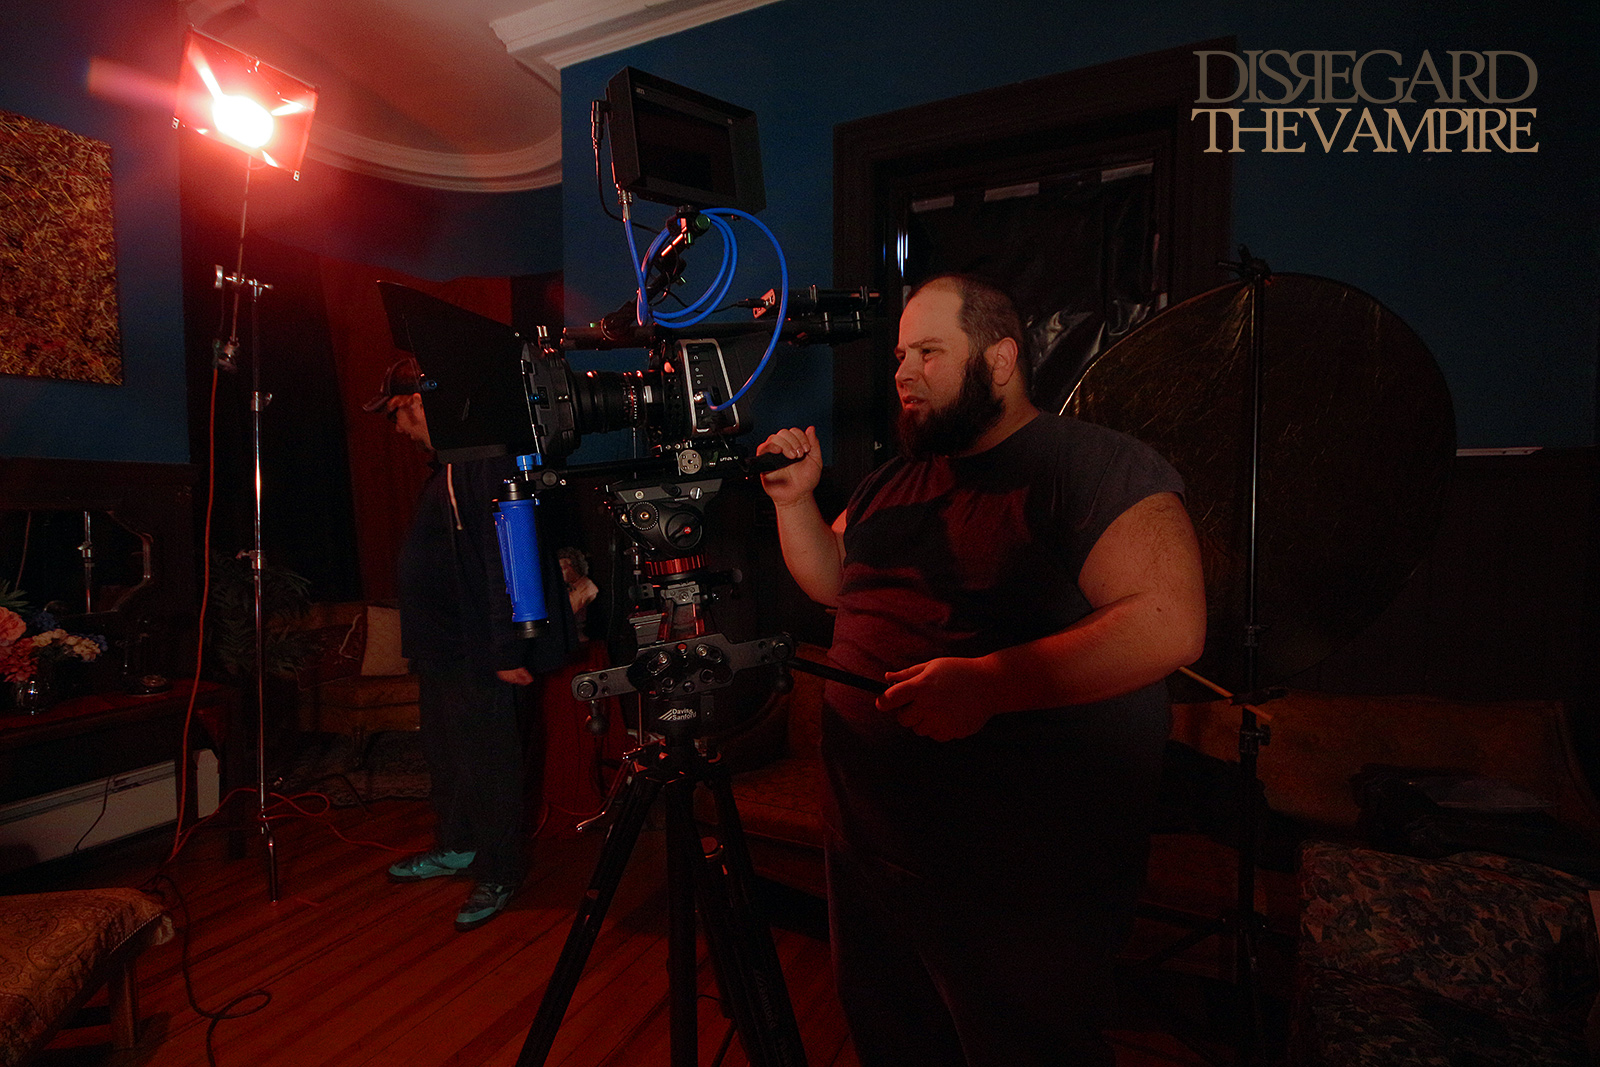 A.C. James DeMello behind the camera on set of Disregard The Vampire, 2014.